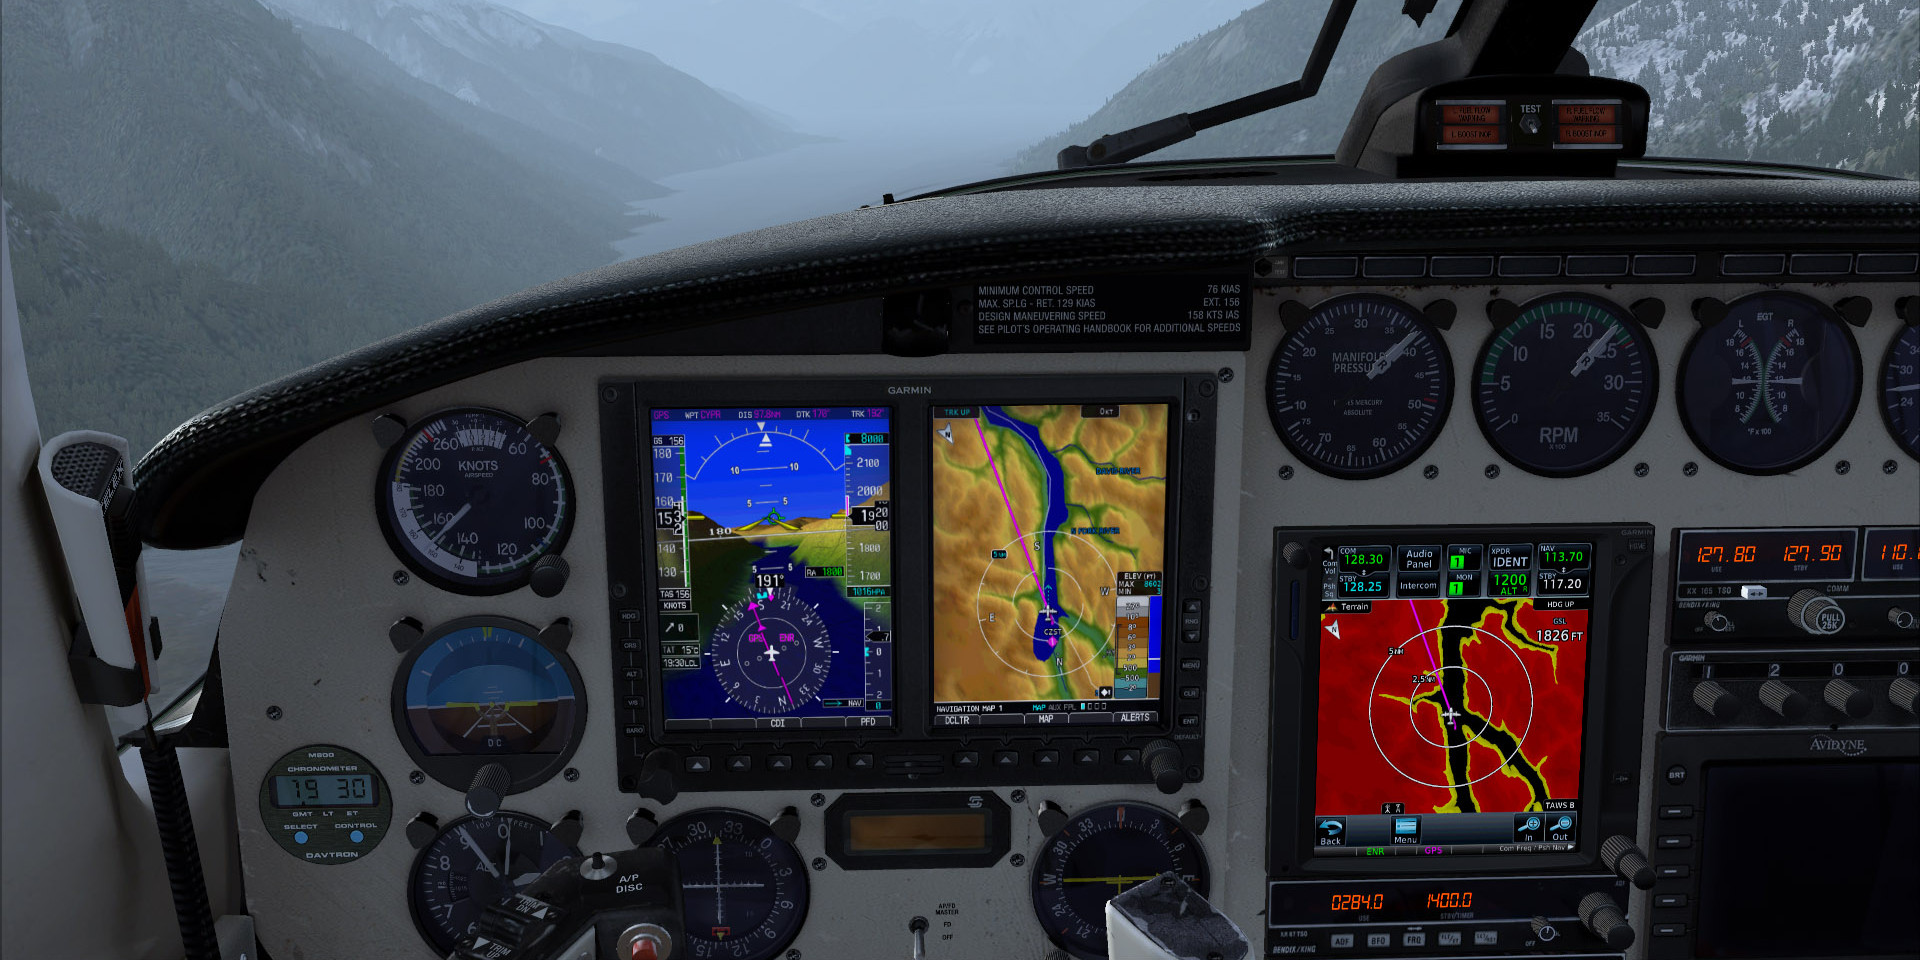 Flight1 Garmin G500 G600 Release